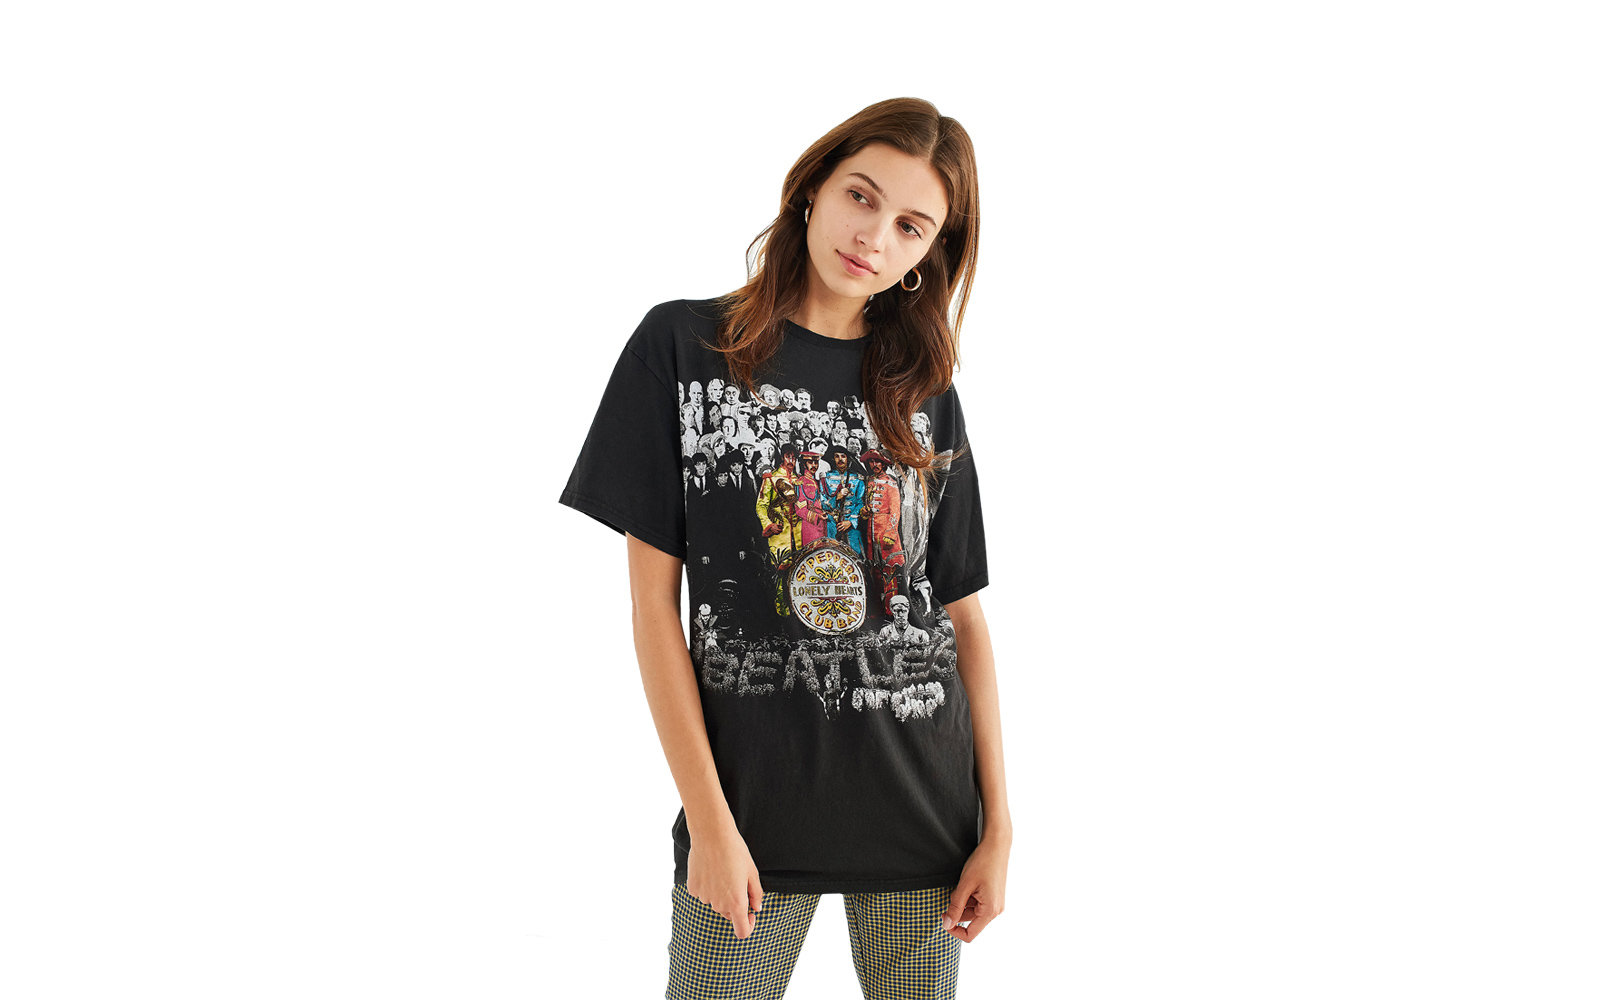 Urban Outfitters Junk Food The Beatles Exploded Shirt